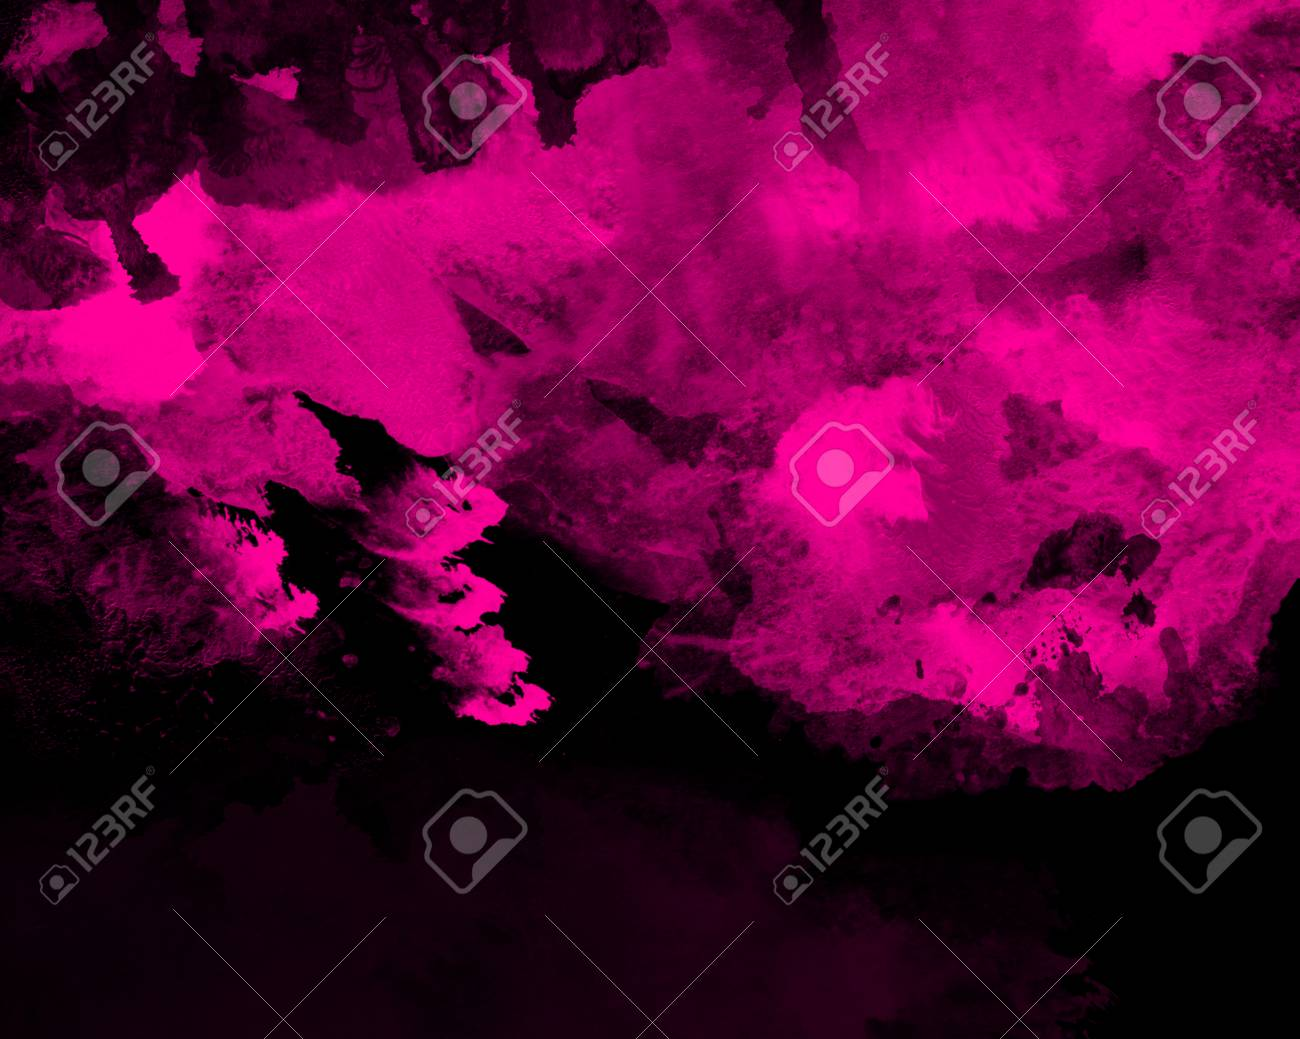 Pink Graphic Watercolor Grunge Background Decoration Abstract Stock Photo Picture And Royalty Free Image Image 86440728